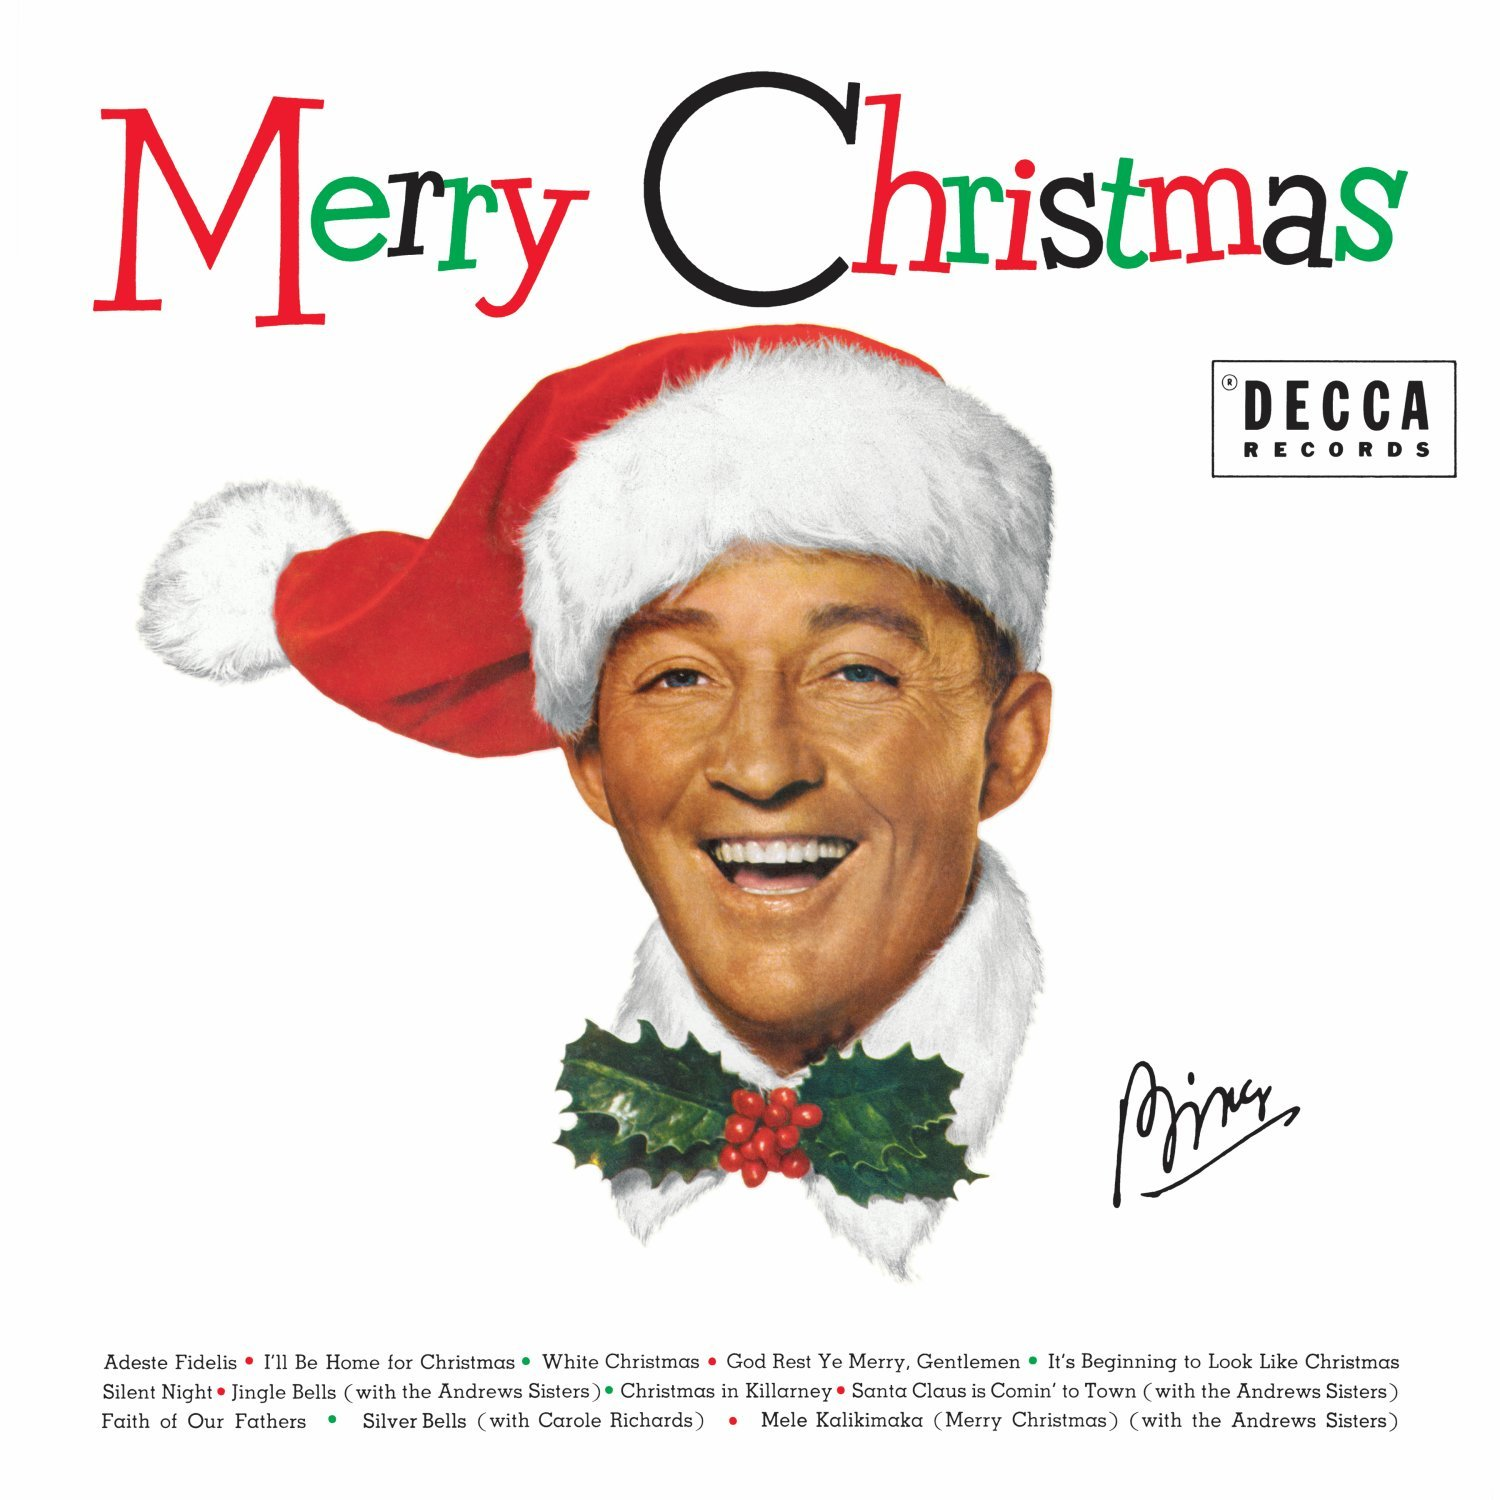 Merry Christmas by Universal Music Group